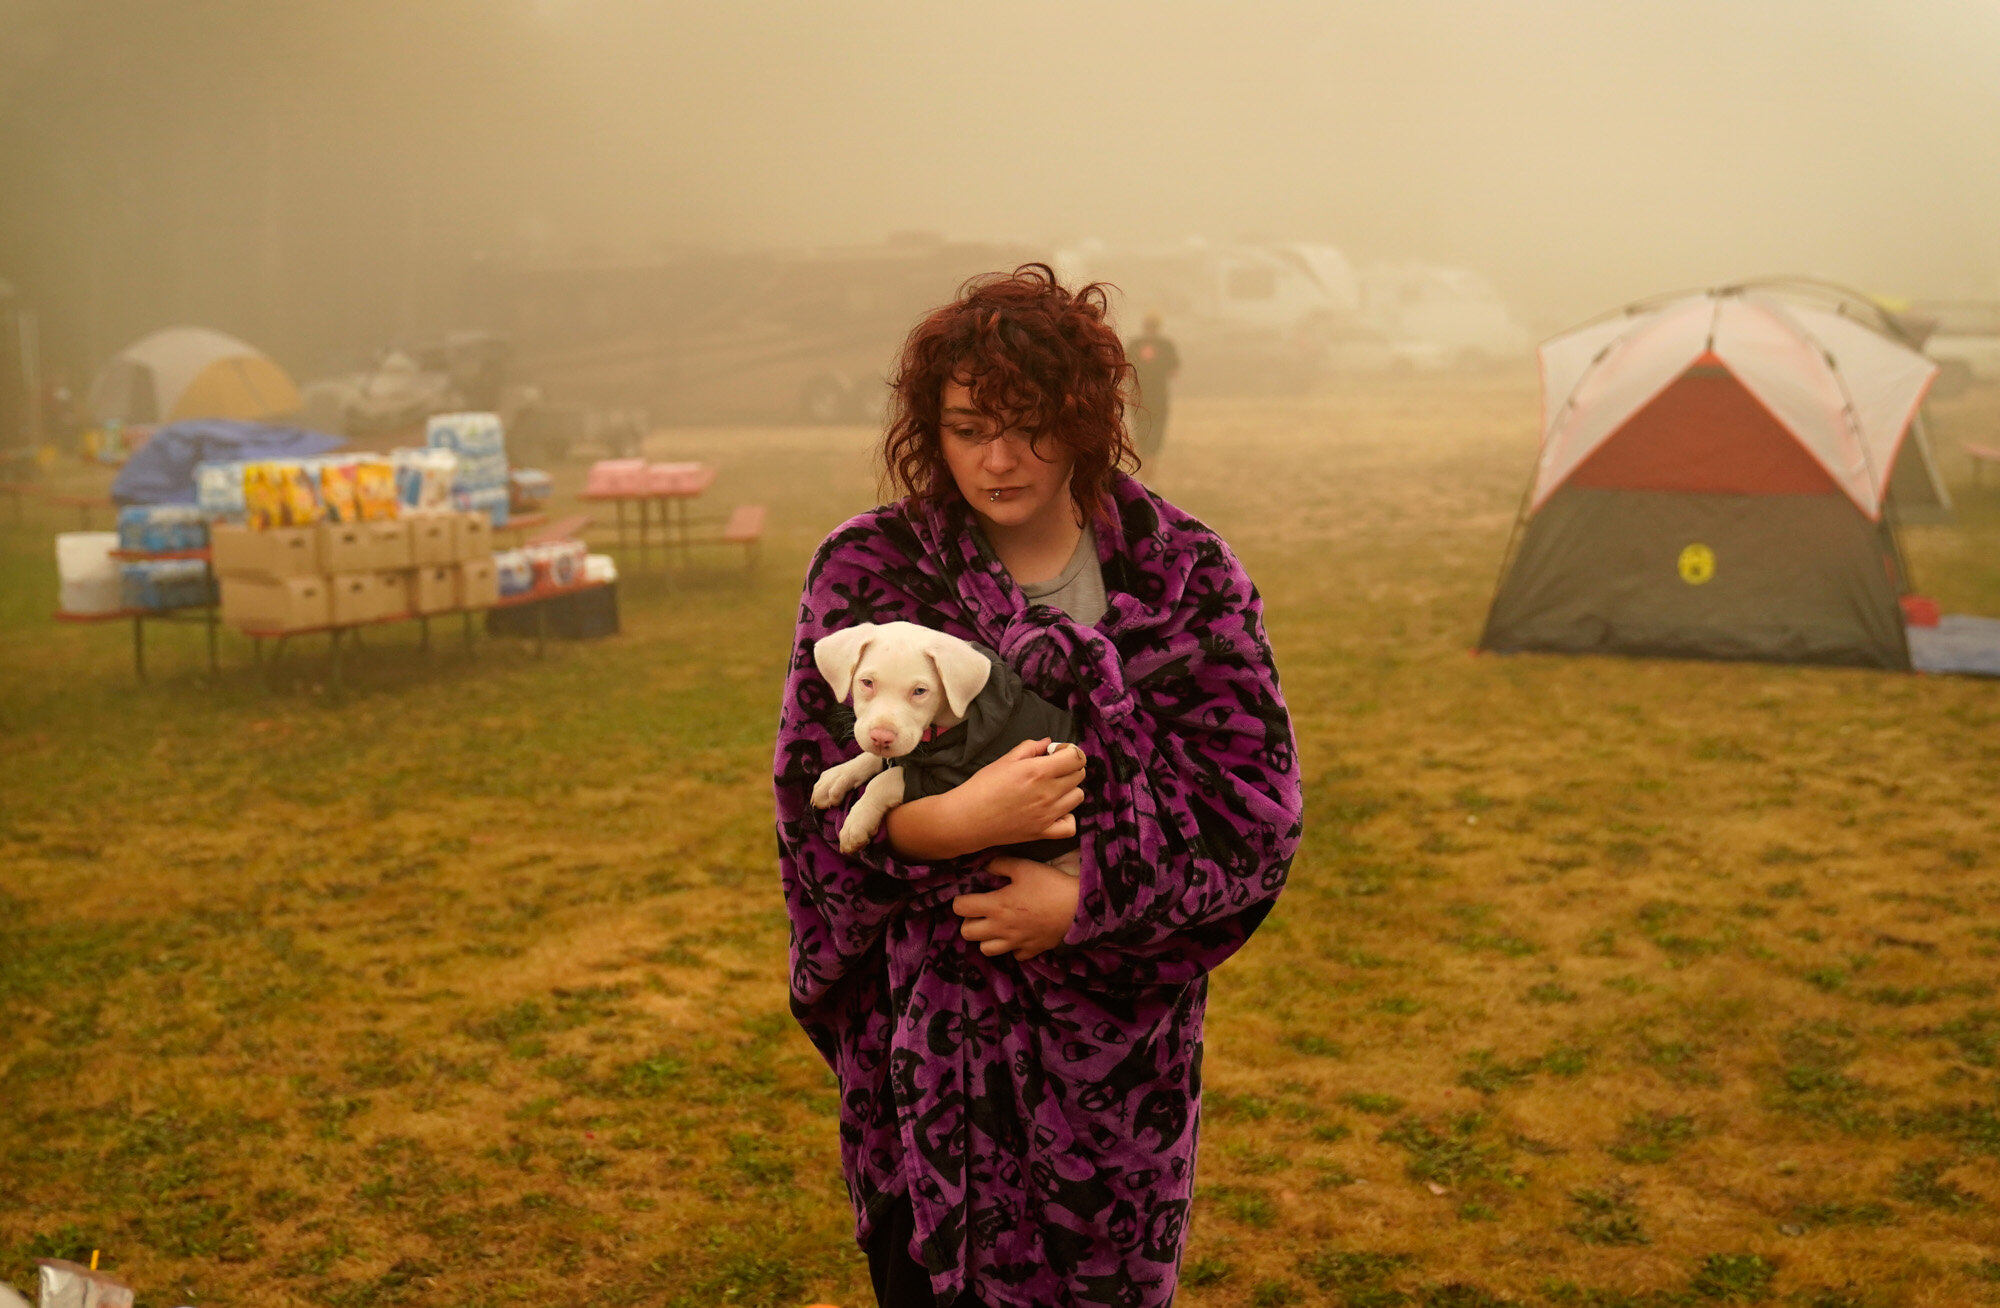 Shayanne Summers holds her dog Toph while wrapped in a blanket on Sept. 13, 2020, after staying several days in a tent at an evacuation center at the Milwaukie-Portland Elks Lodge in Oak Grove, Ore. Summers evacuated from near Molalla, Ore., which was threatened by the Riverside Fire. (AP Photo/John Locher)